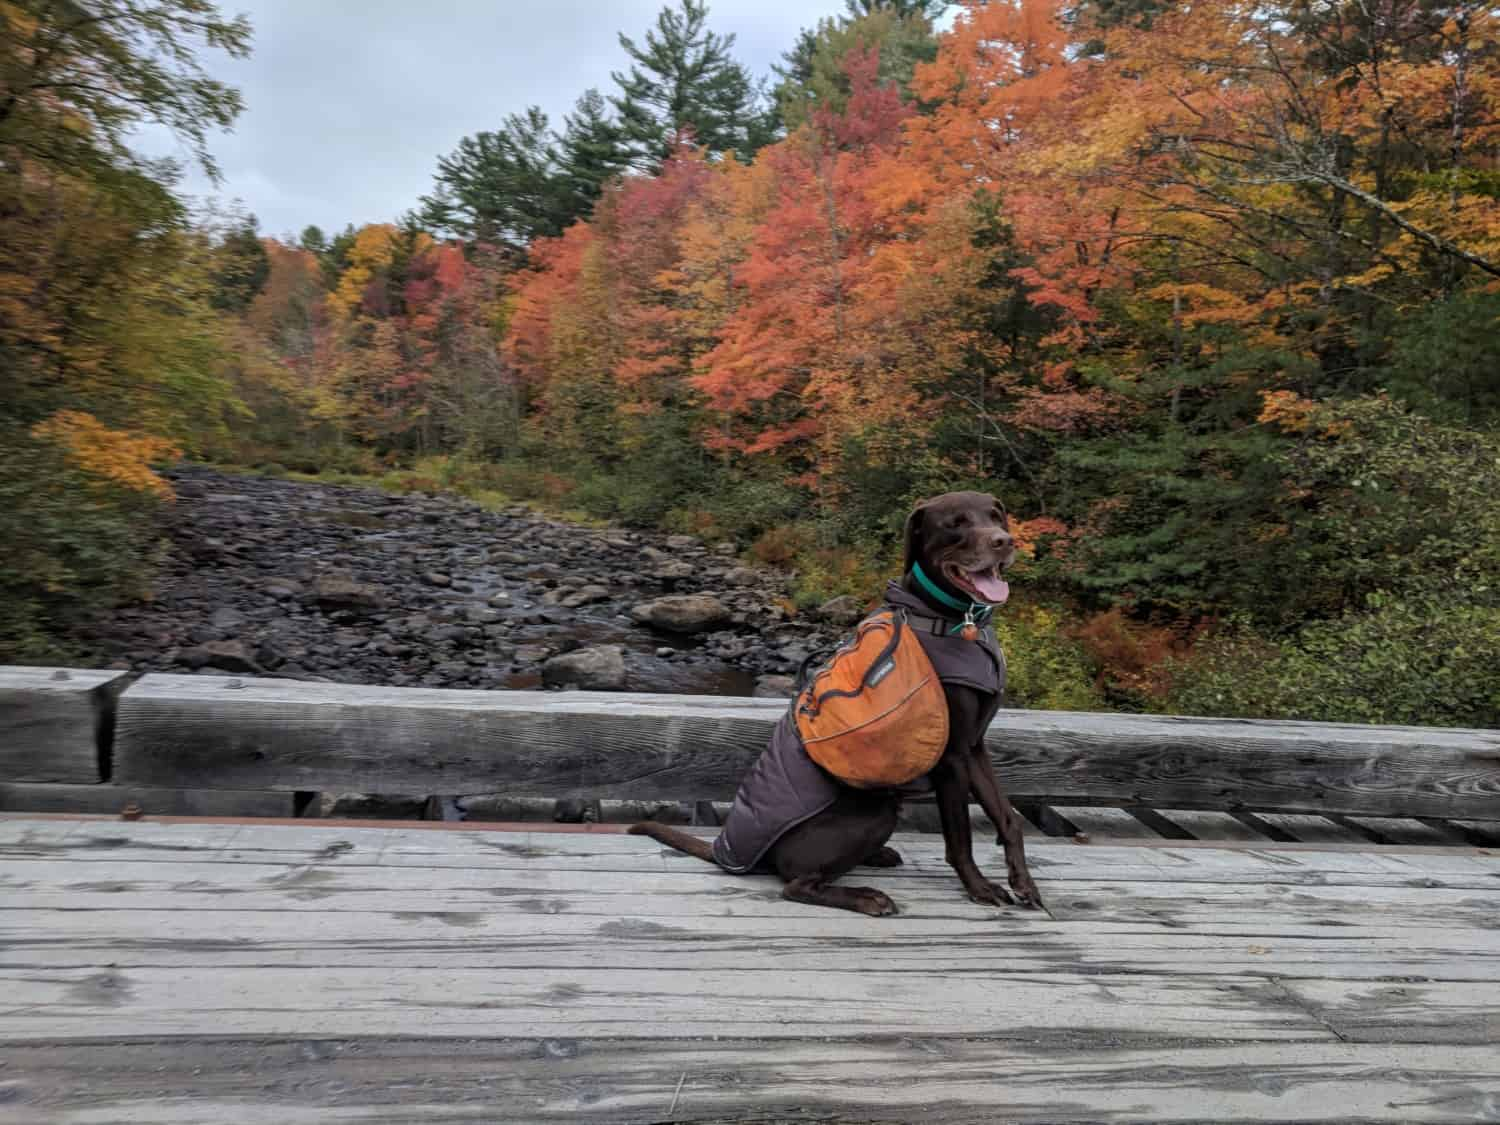 Toby the dog hiking the pet friendly Appalachian Trail in Maine